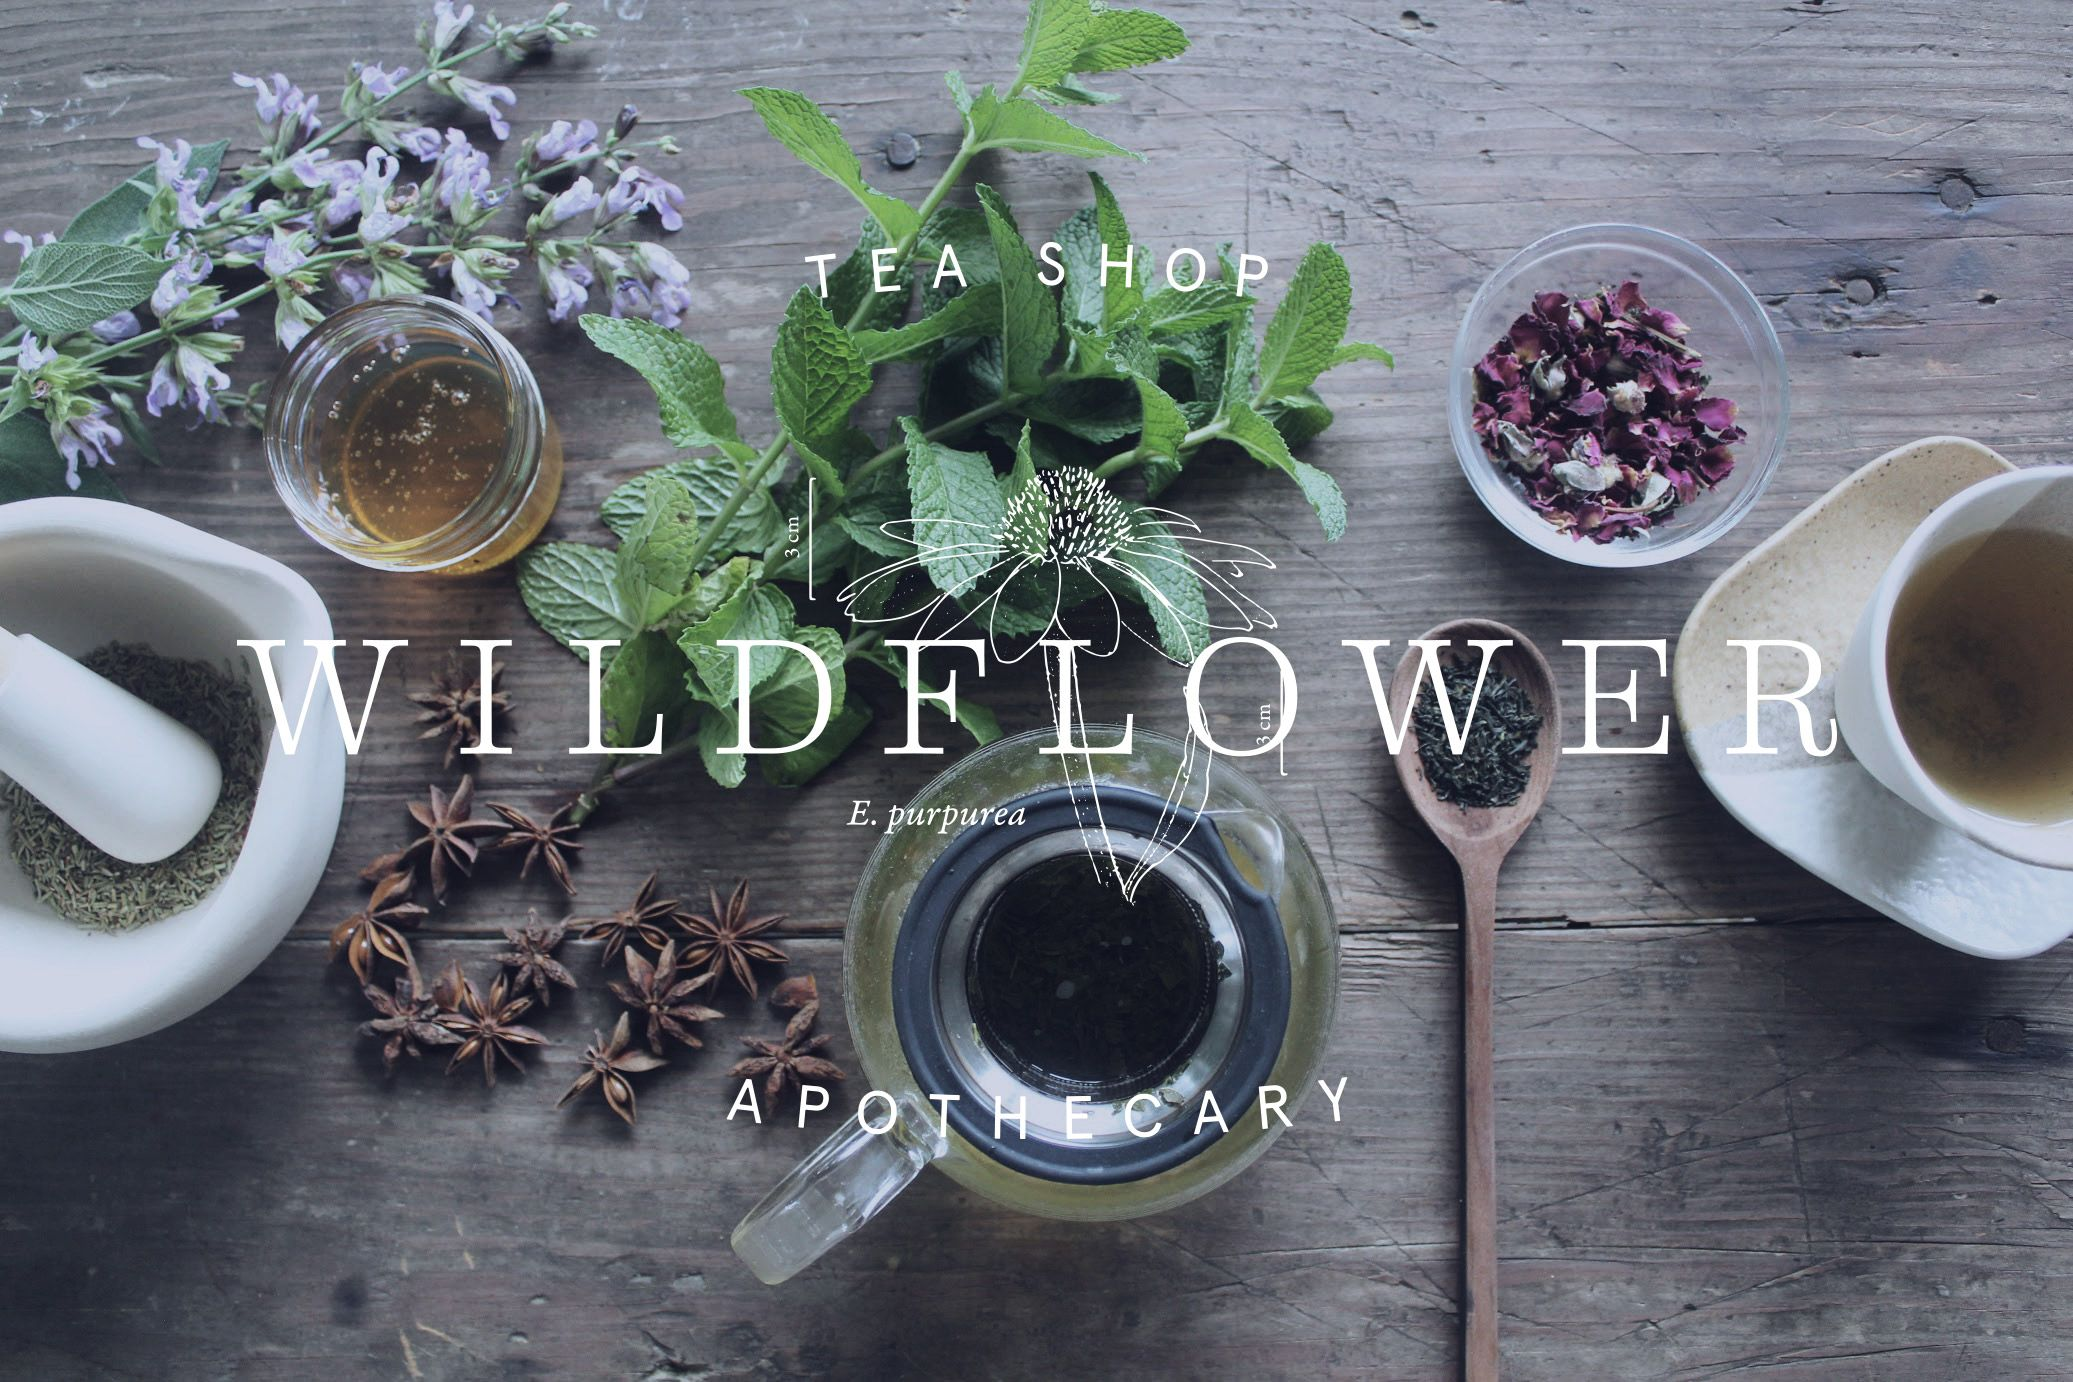 Wildflower herbal & tea shop in Chattanooga, TN Wild